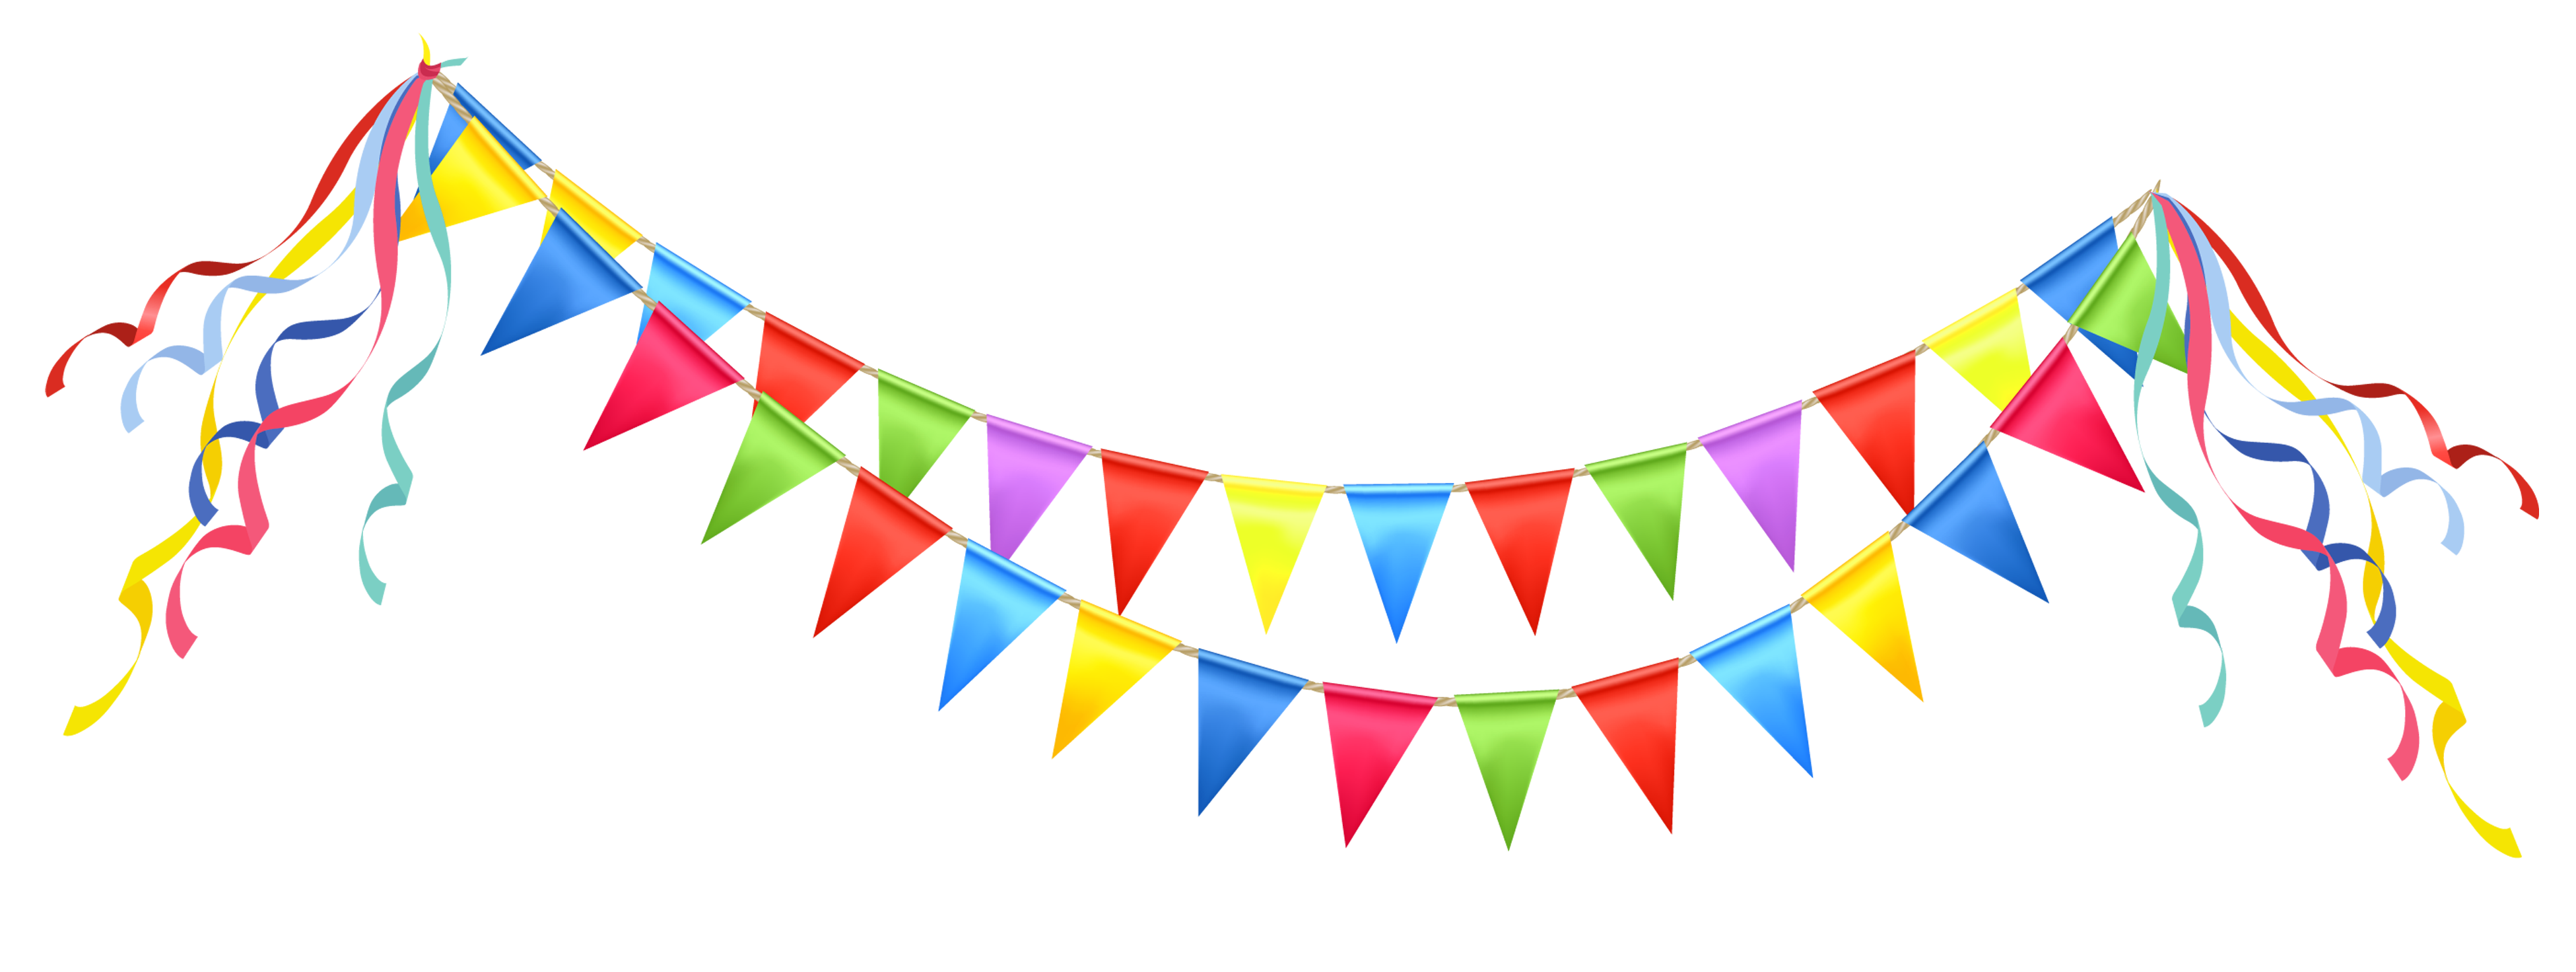 Party streamers clipart picture library Free Party Cliparts, Download Free Clip Art, Free Clip Art on ... picture library